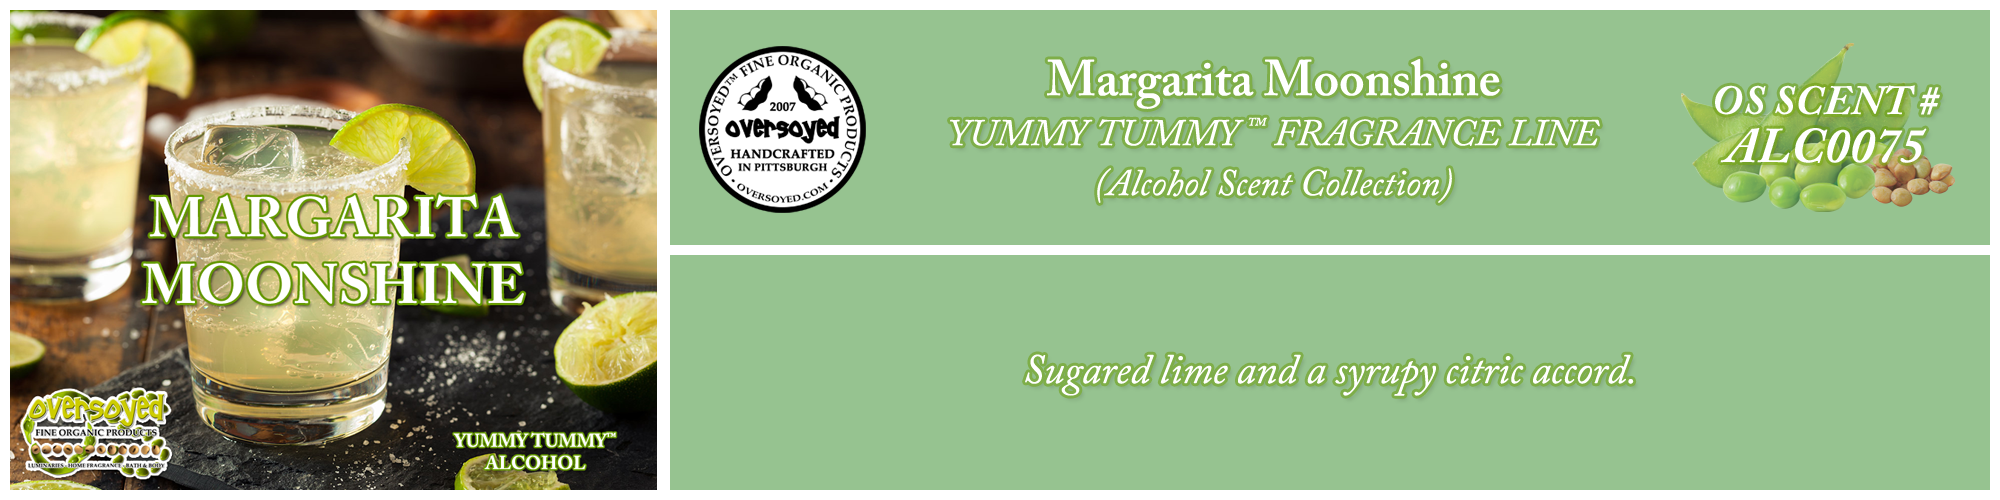 Margarita Moonshine Handcrafted Products Collection